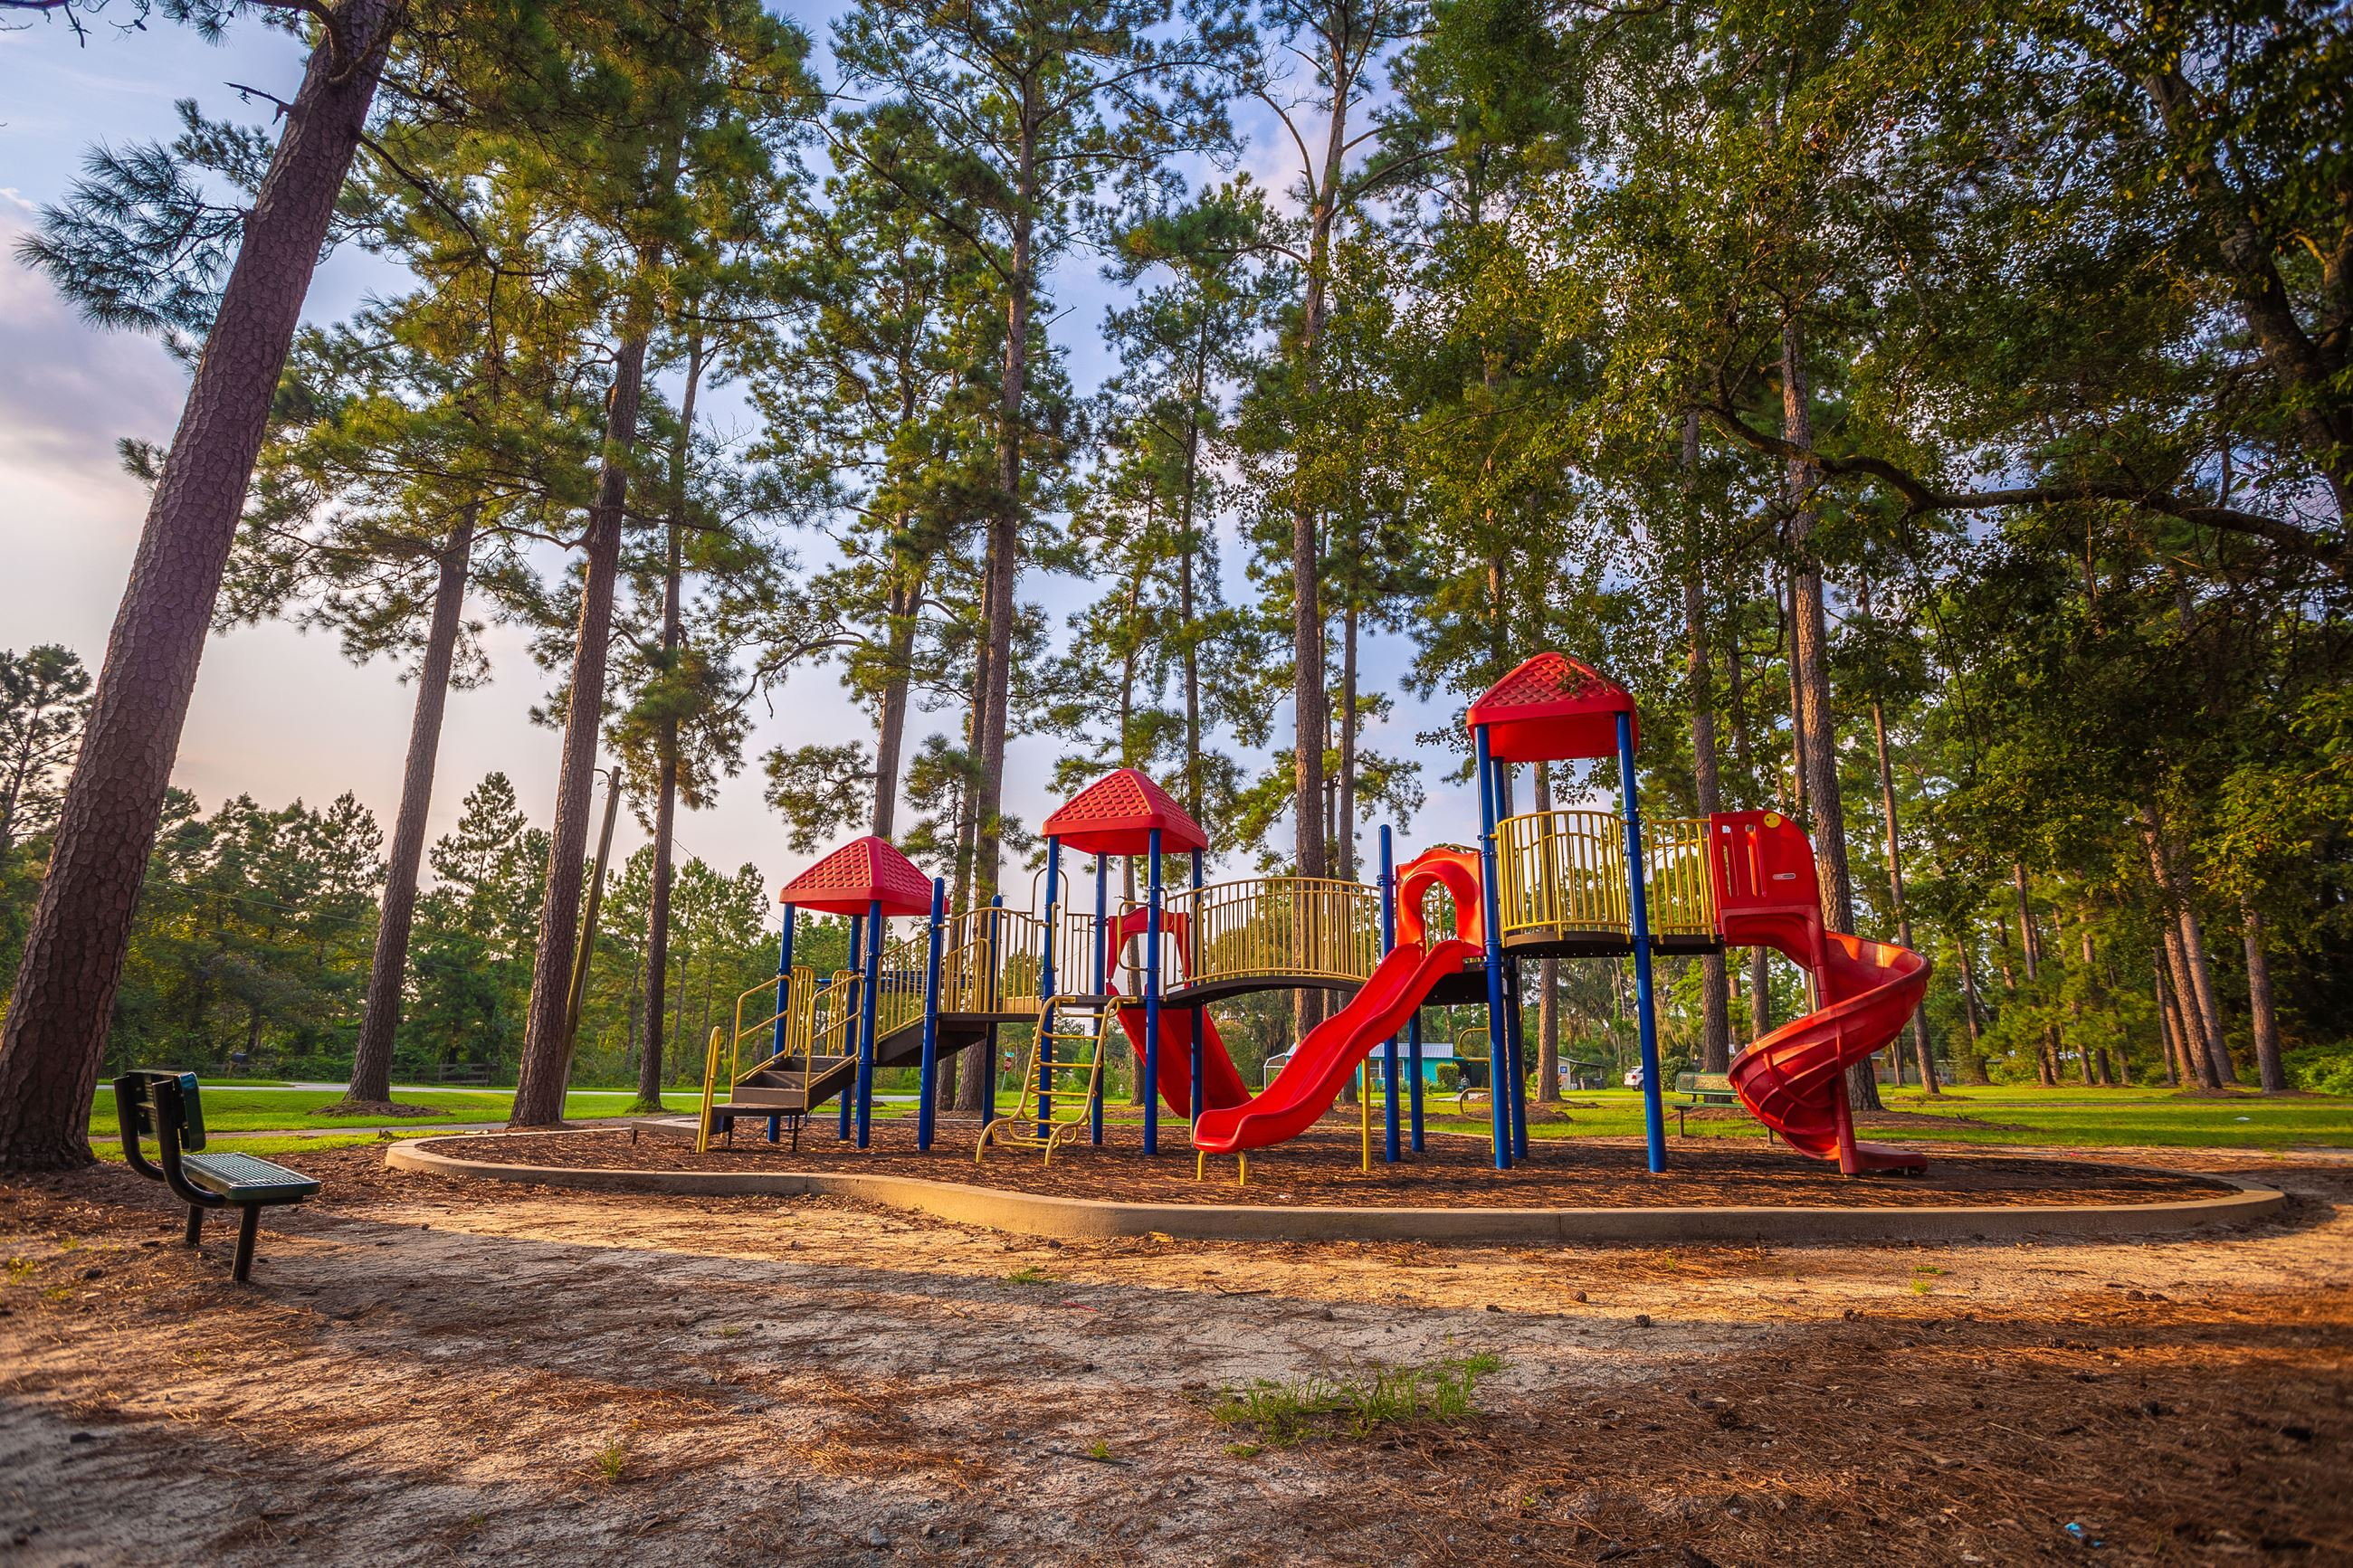 An image of a red playground structure with slides and monkey bars for children.